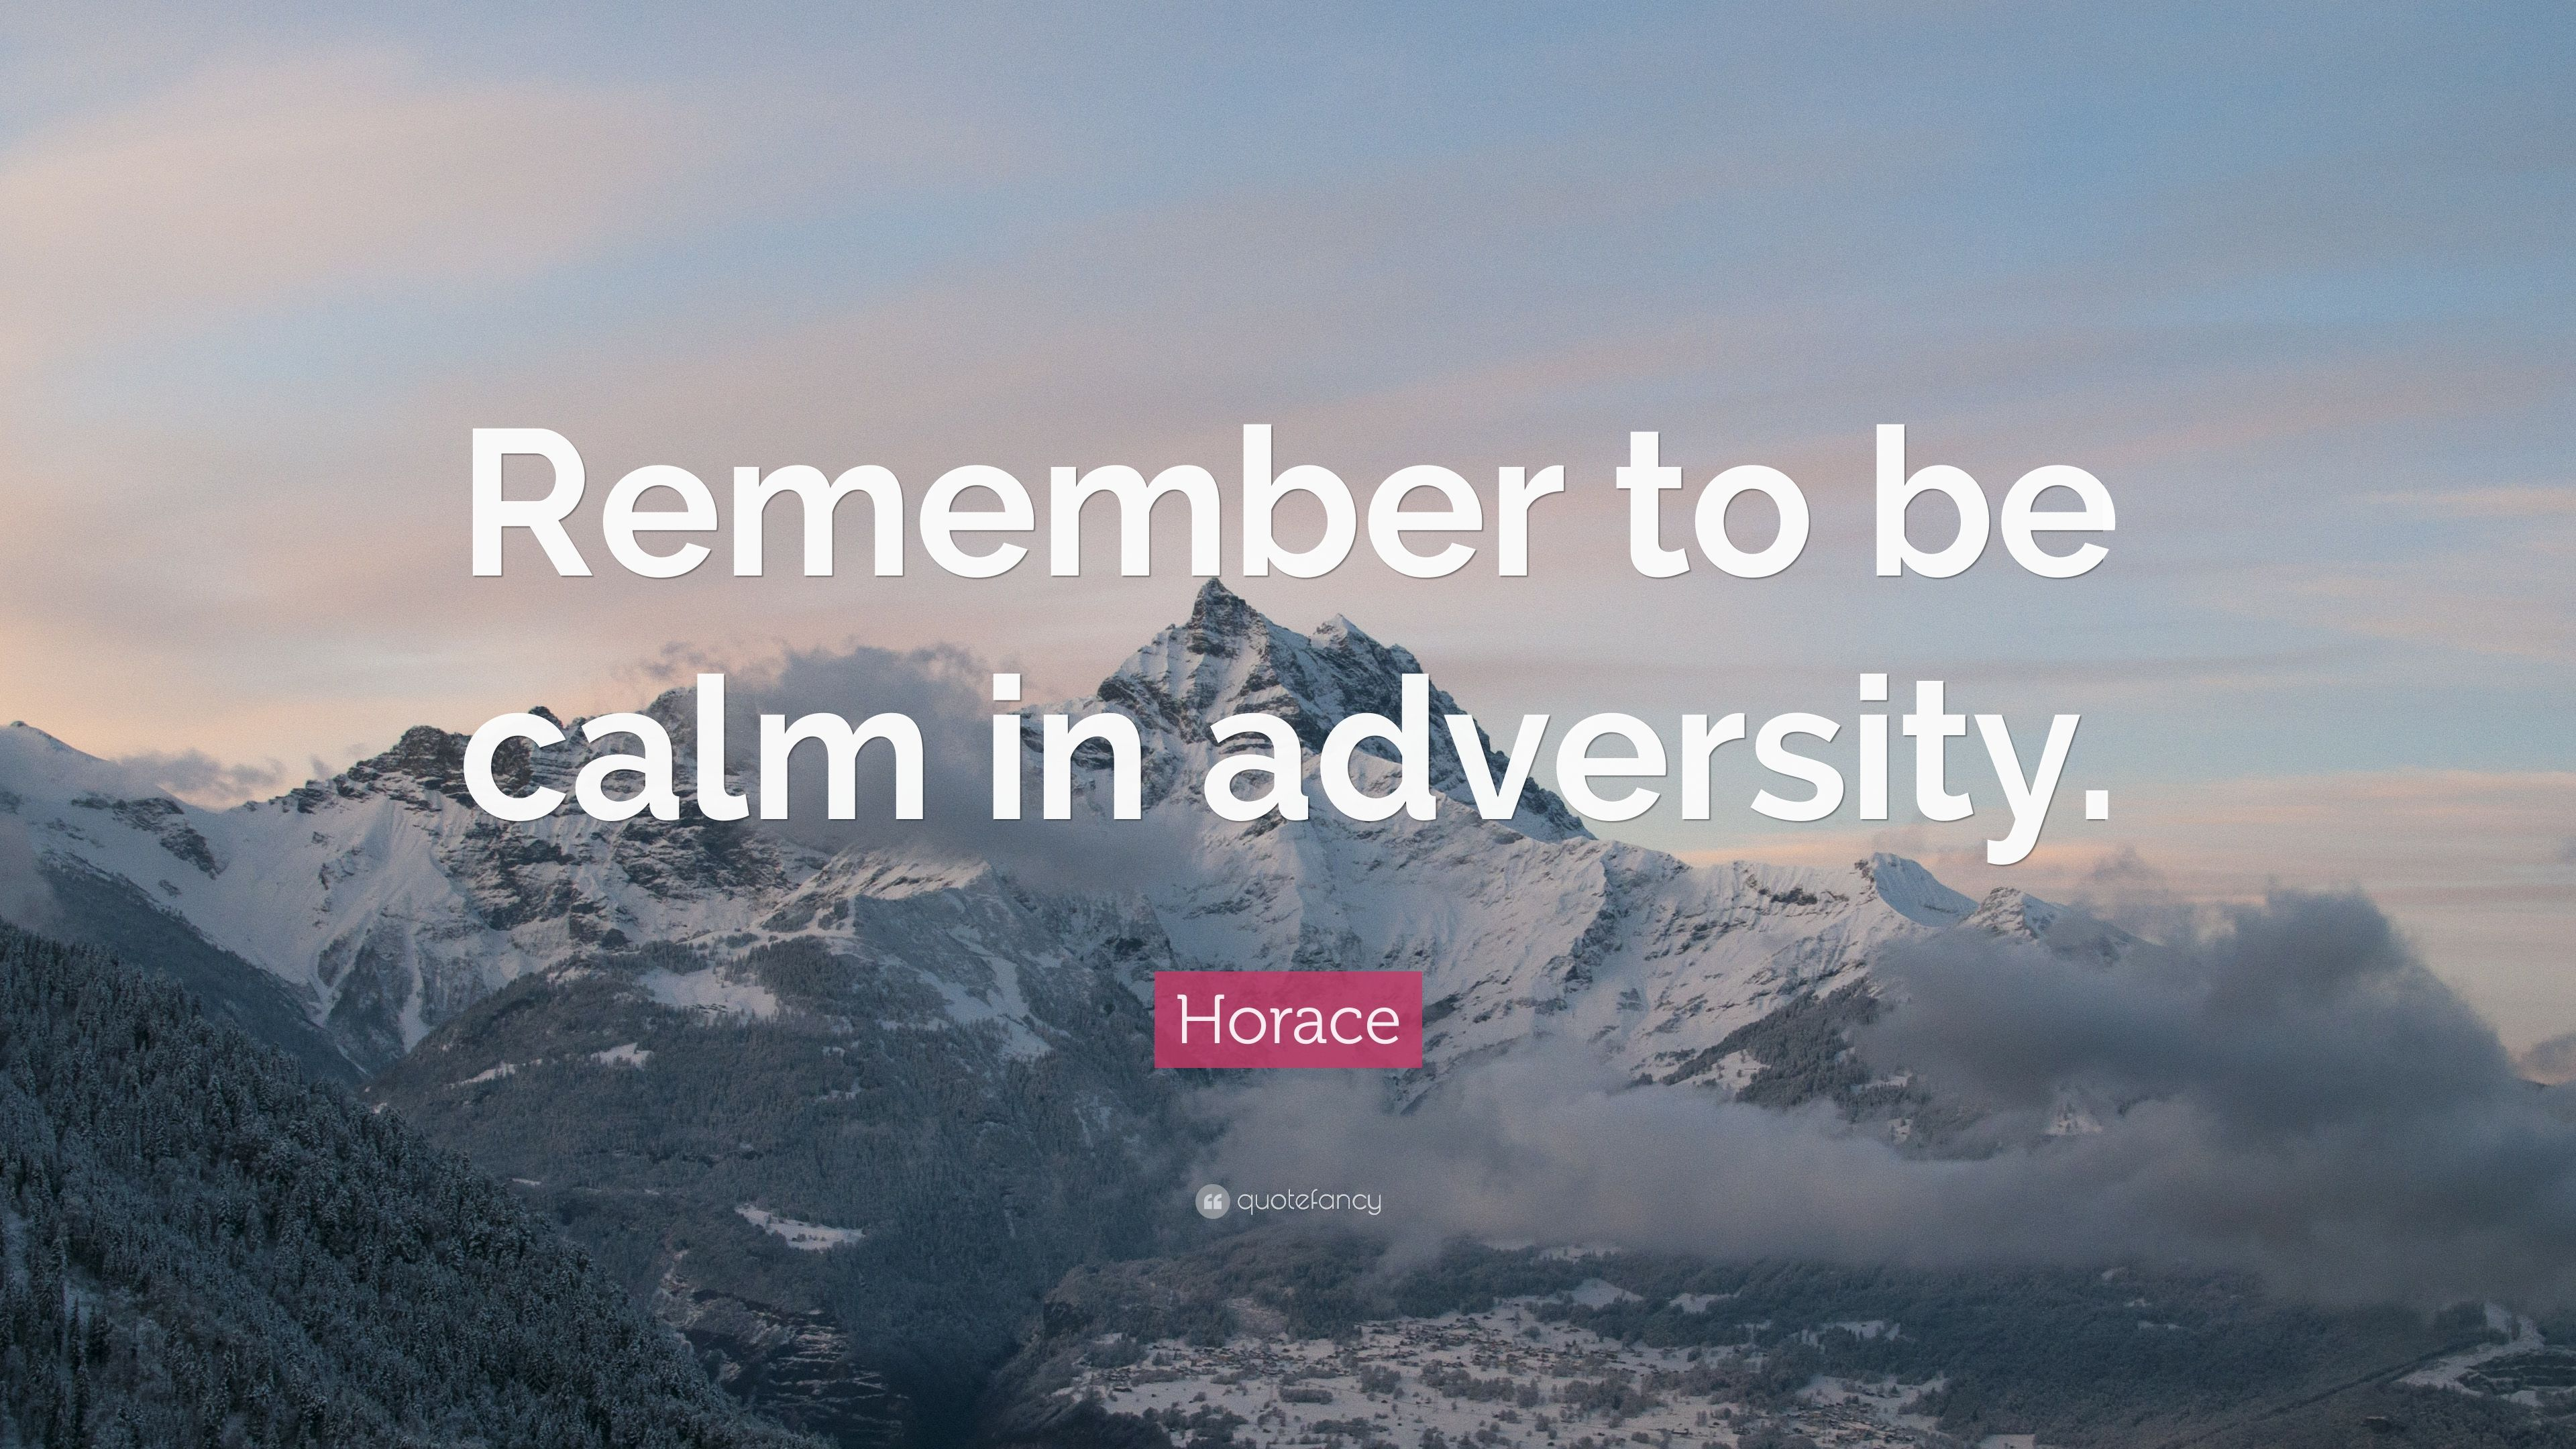 horace adversity View homework help - horace on adversity from english 000 at dr michael m krop senior high horace is correct when stating that adversity is integral to elicit talents that would have remained.